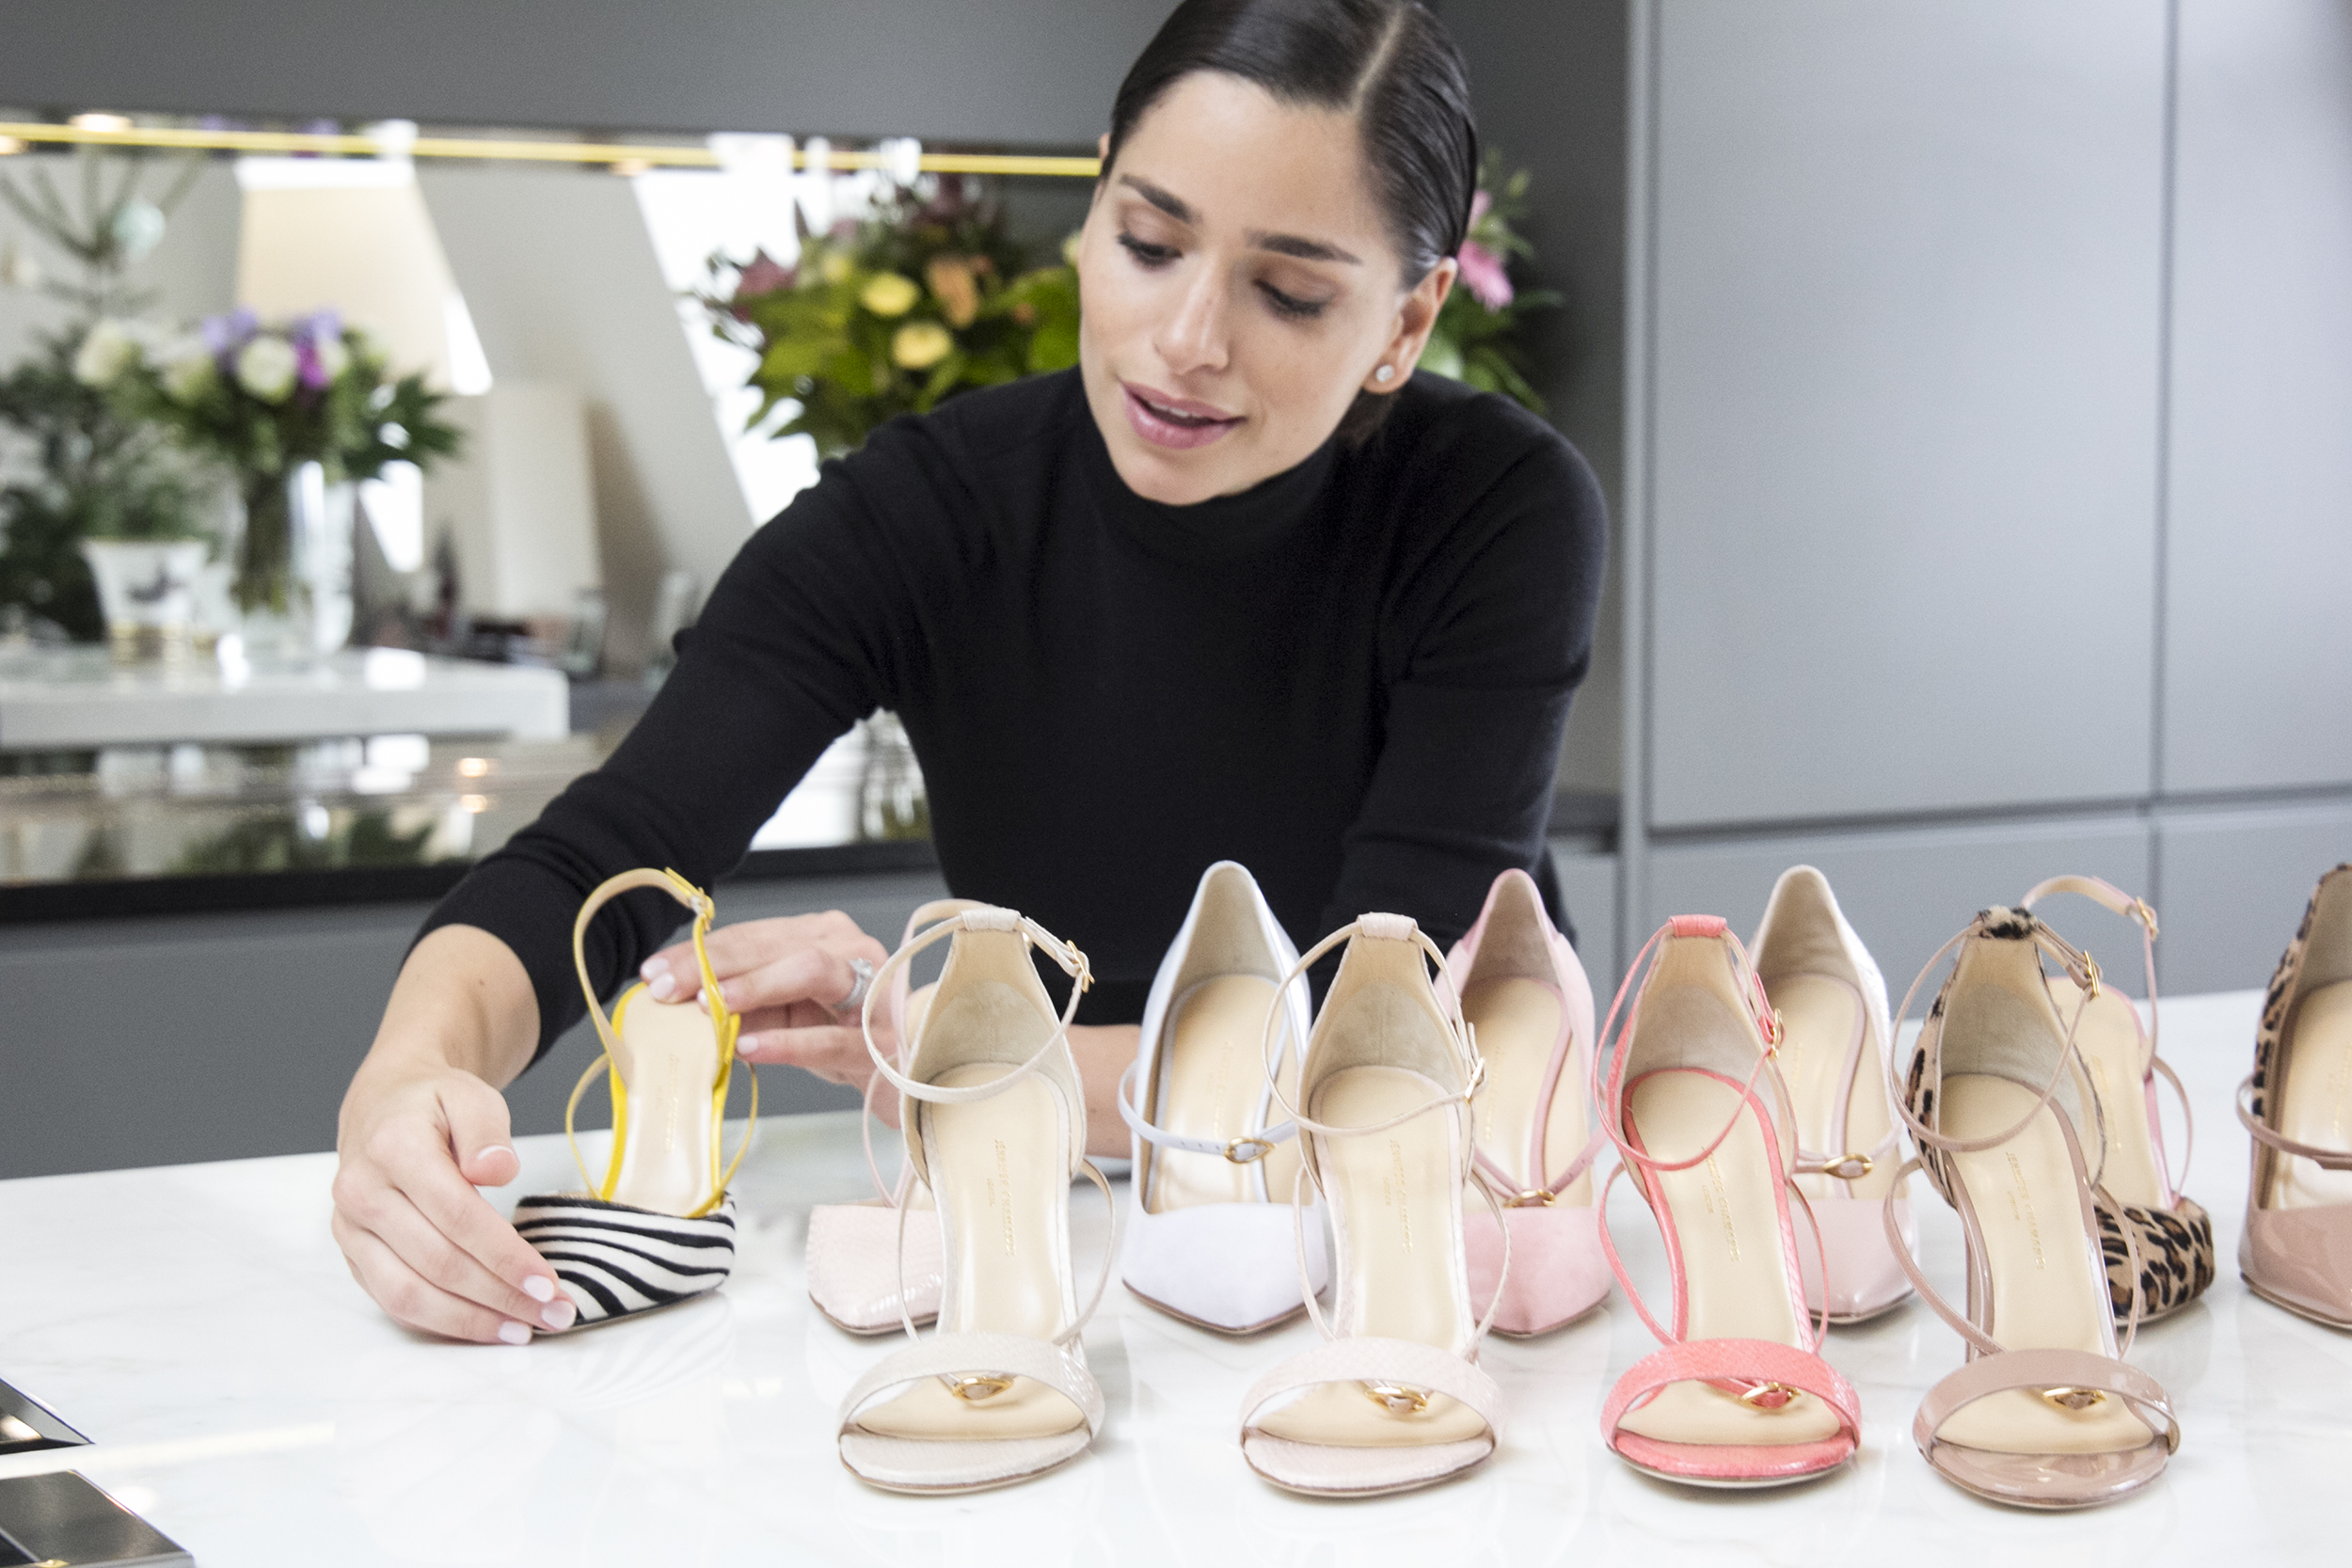 77ceb36a1ded2 The Woman Behind The Browns-Backed Footwear Label You Need To Know.  Designer Jennifer Chamandi ...